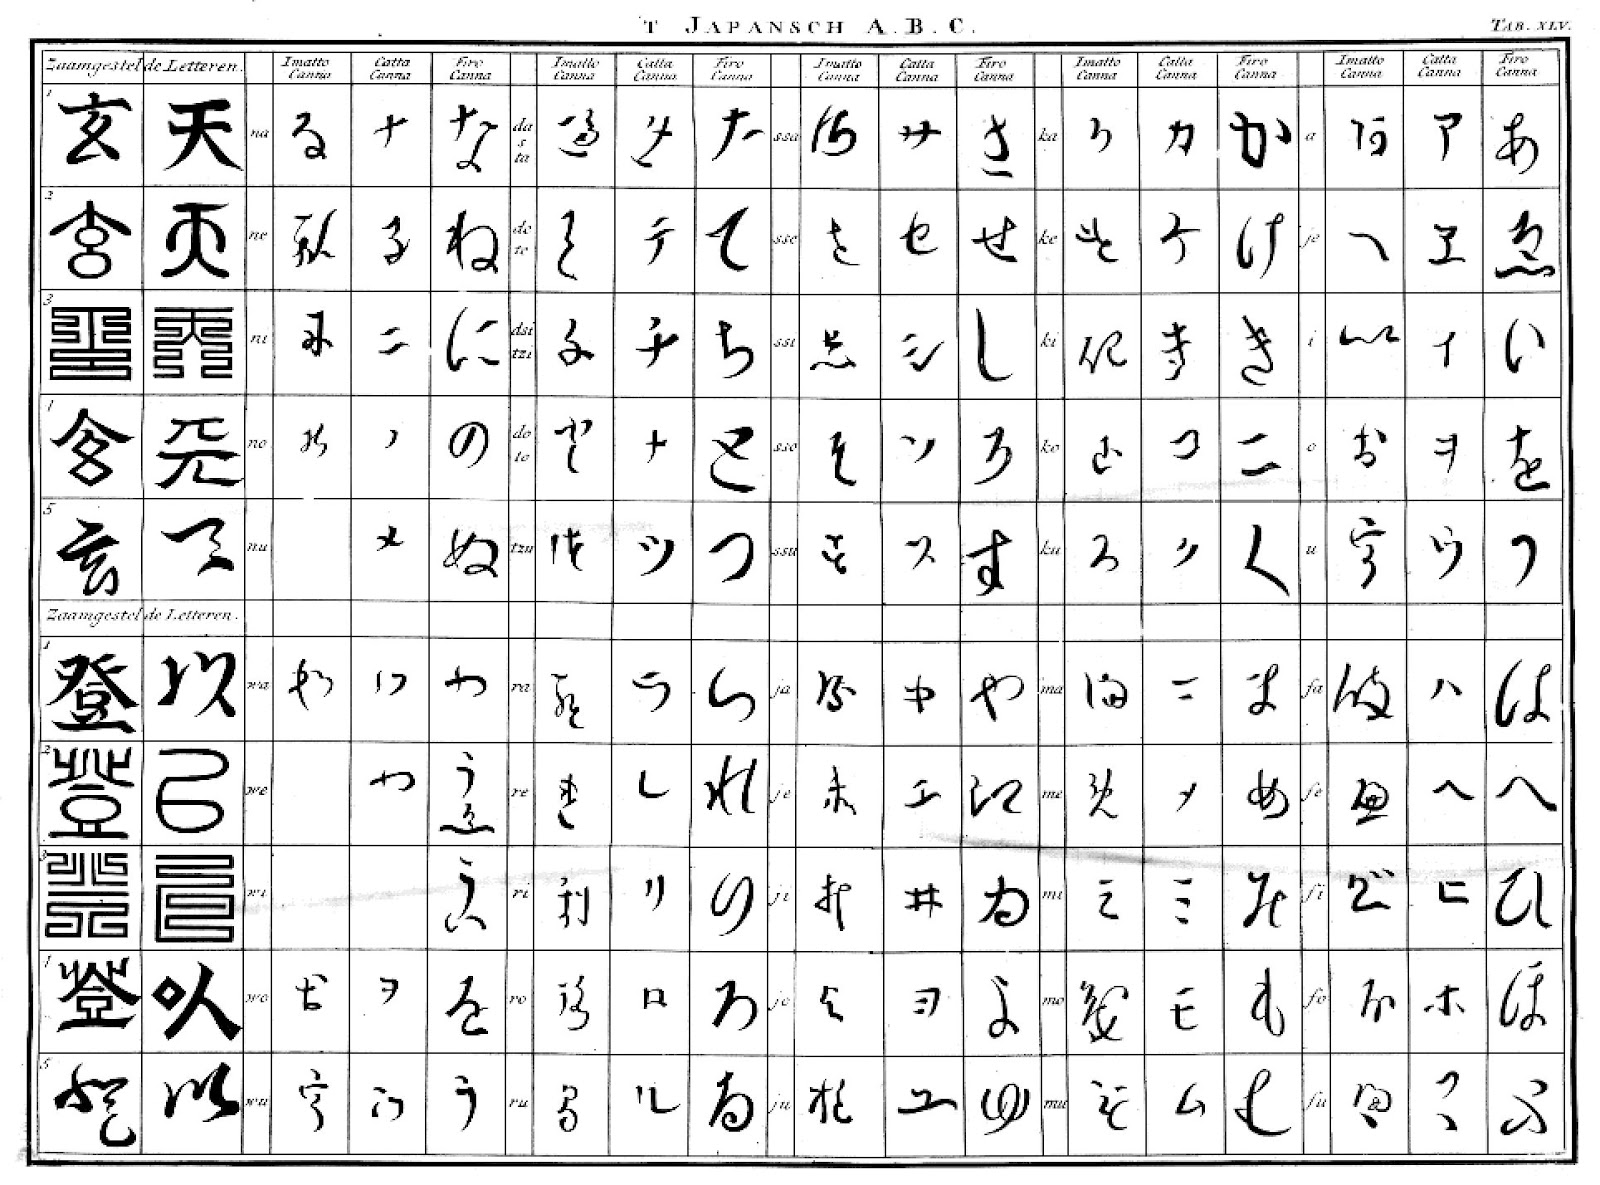 The Polyglot Blog Japanese Alphabet And Charts In Photos